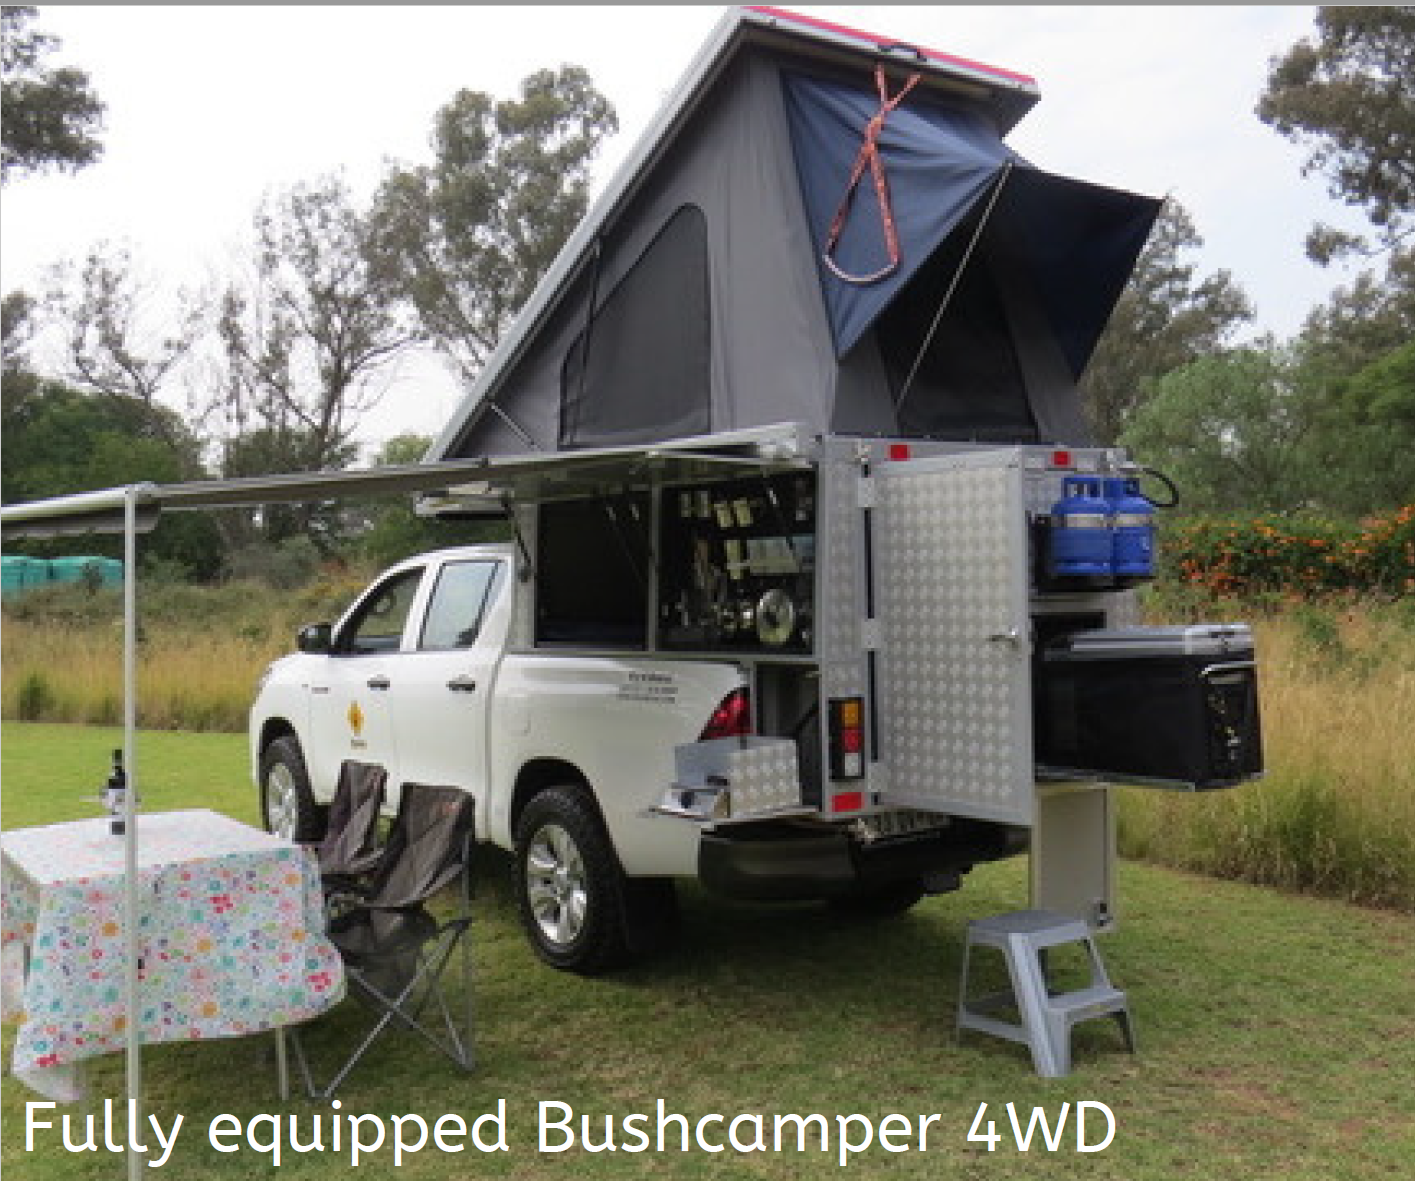 Fully equipped bushcamper 4WD